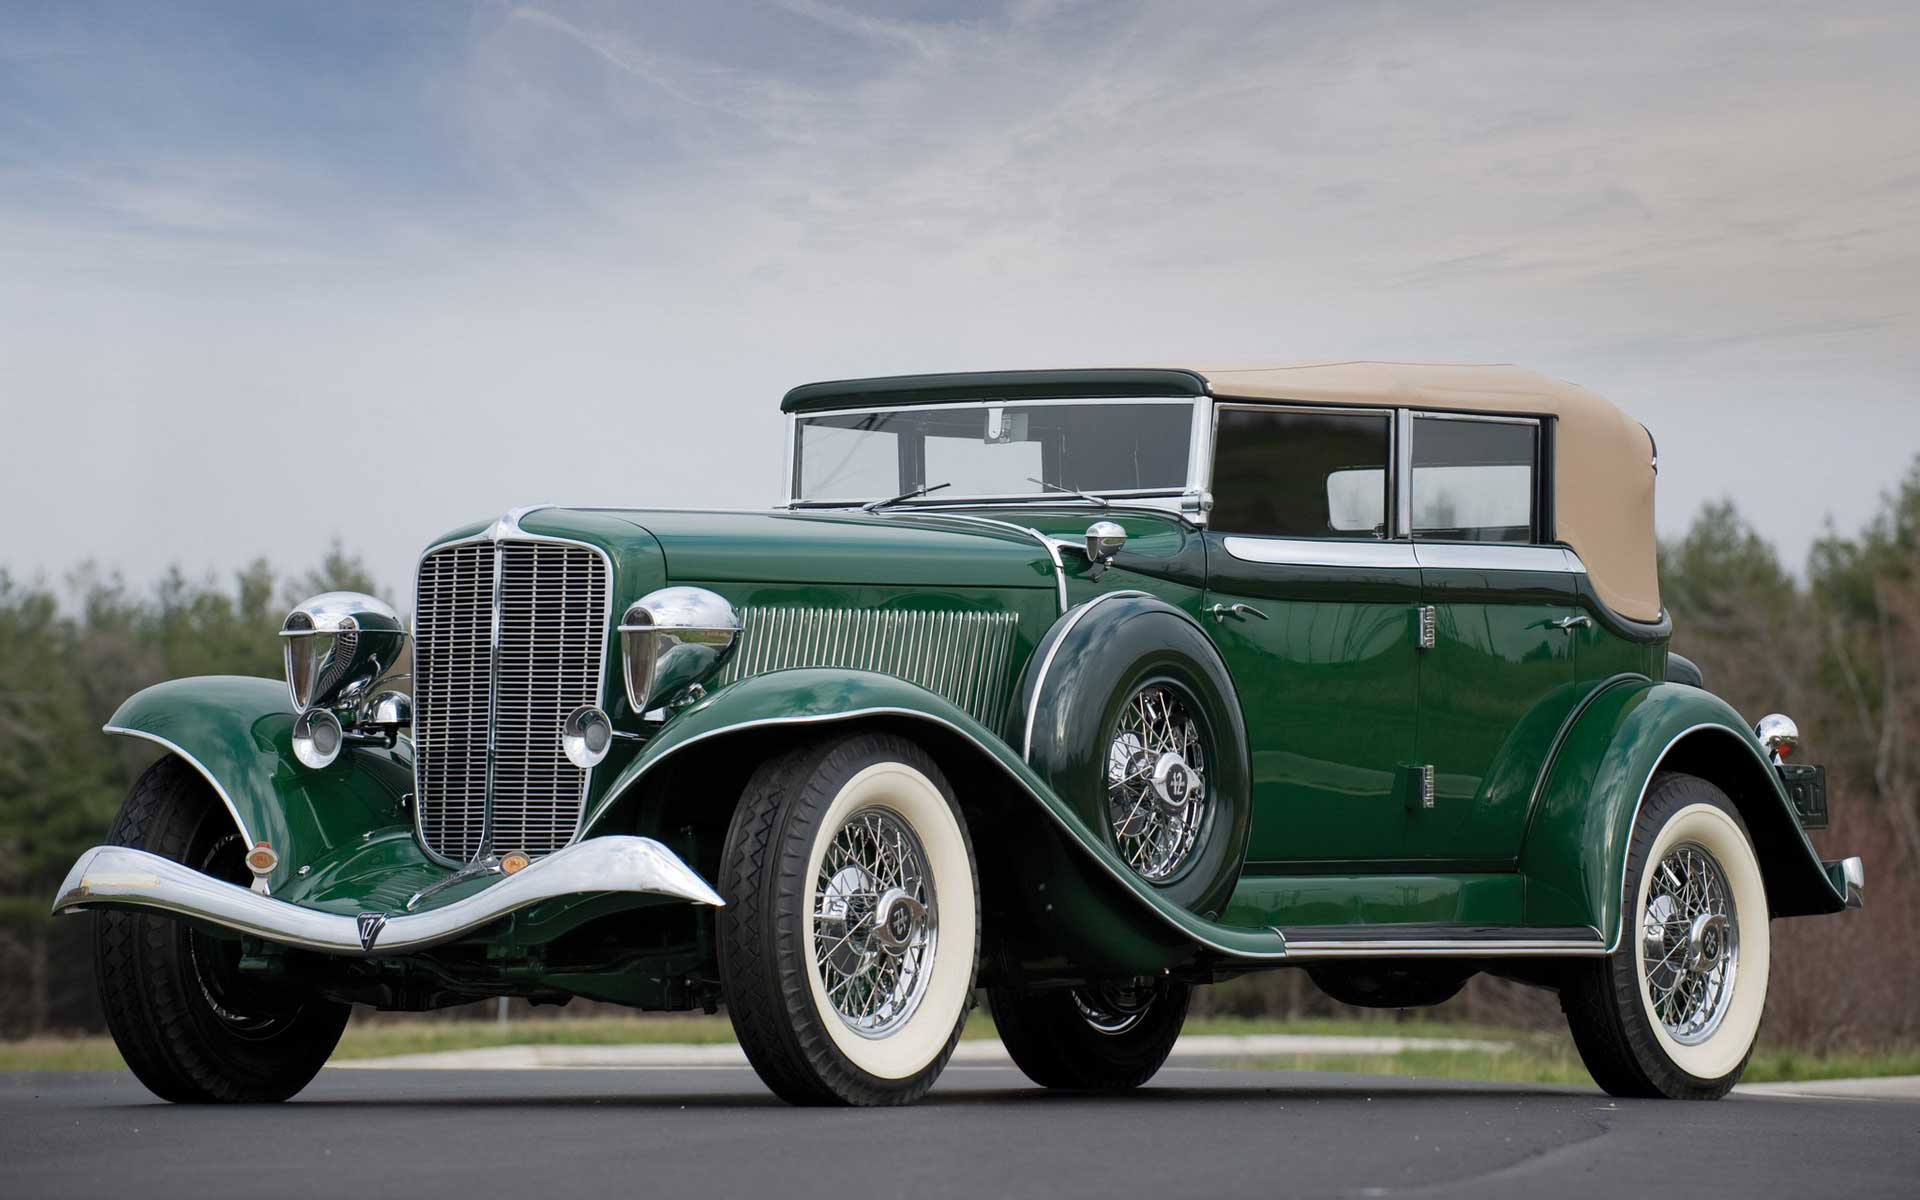 Classic cars hd wallpapers   Vintage Cars   HD widescreen 1920x1200